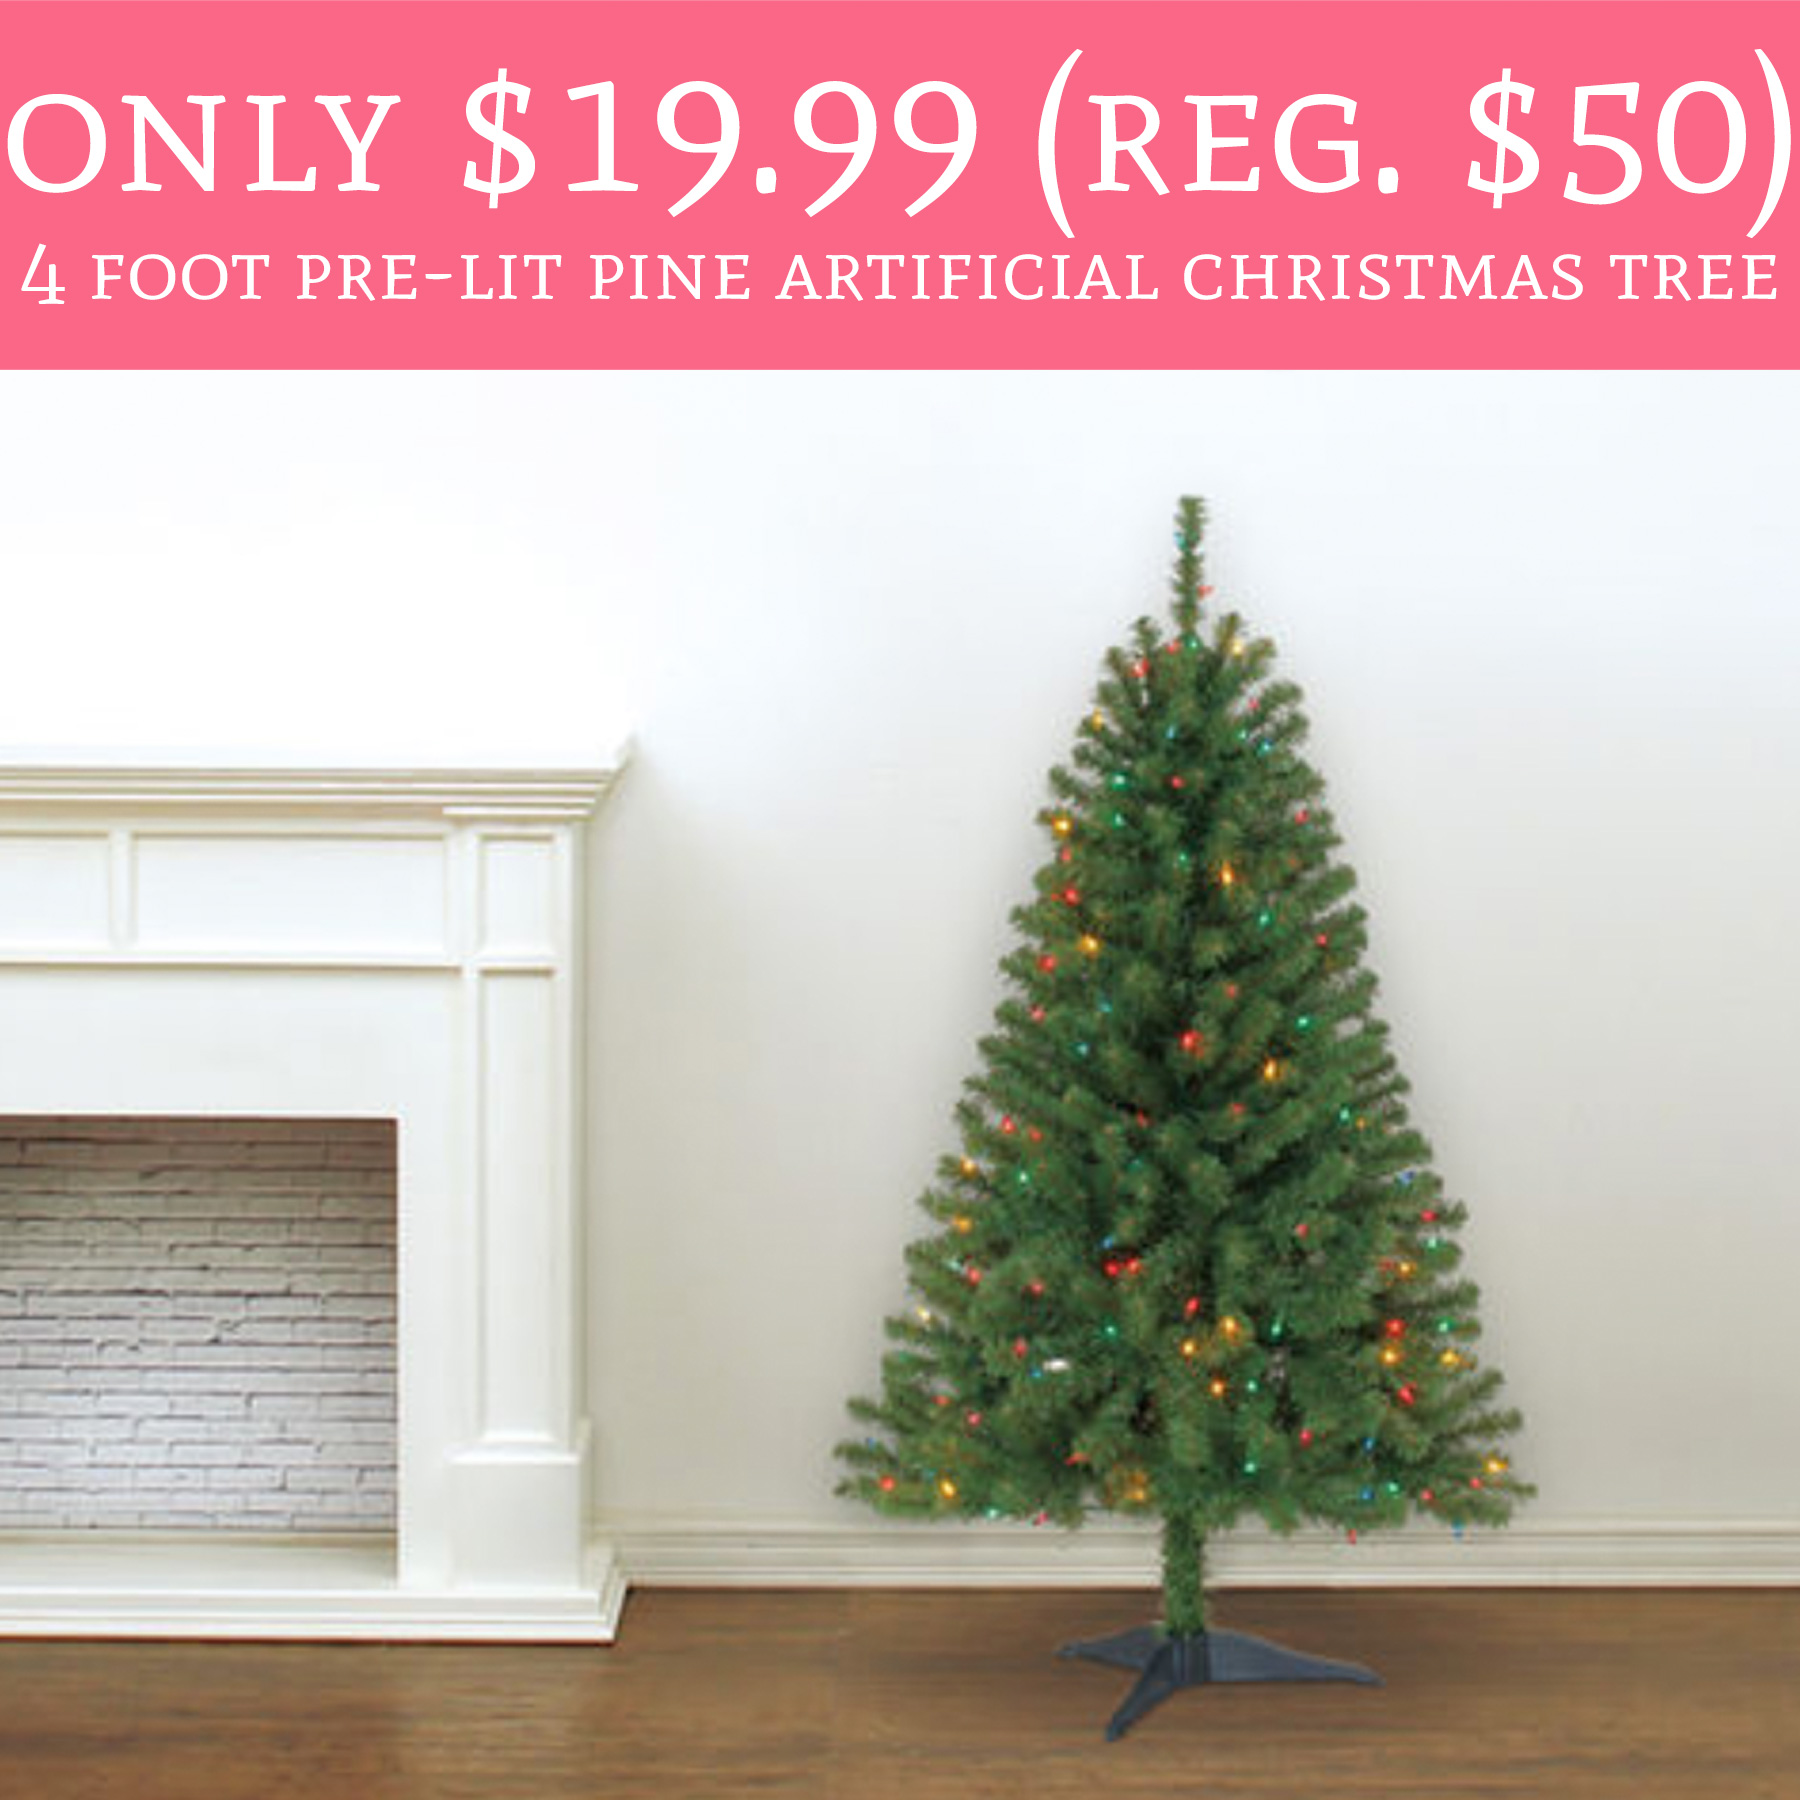 WHOA! Only $19.99 (Regular $50) 4 Foot Pre-Lit Pine